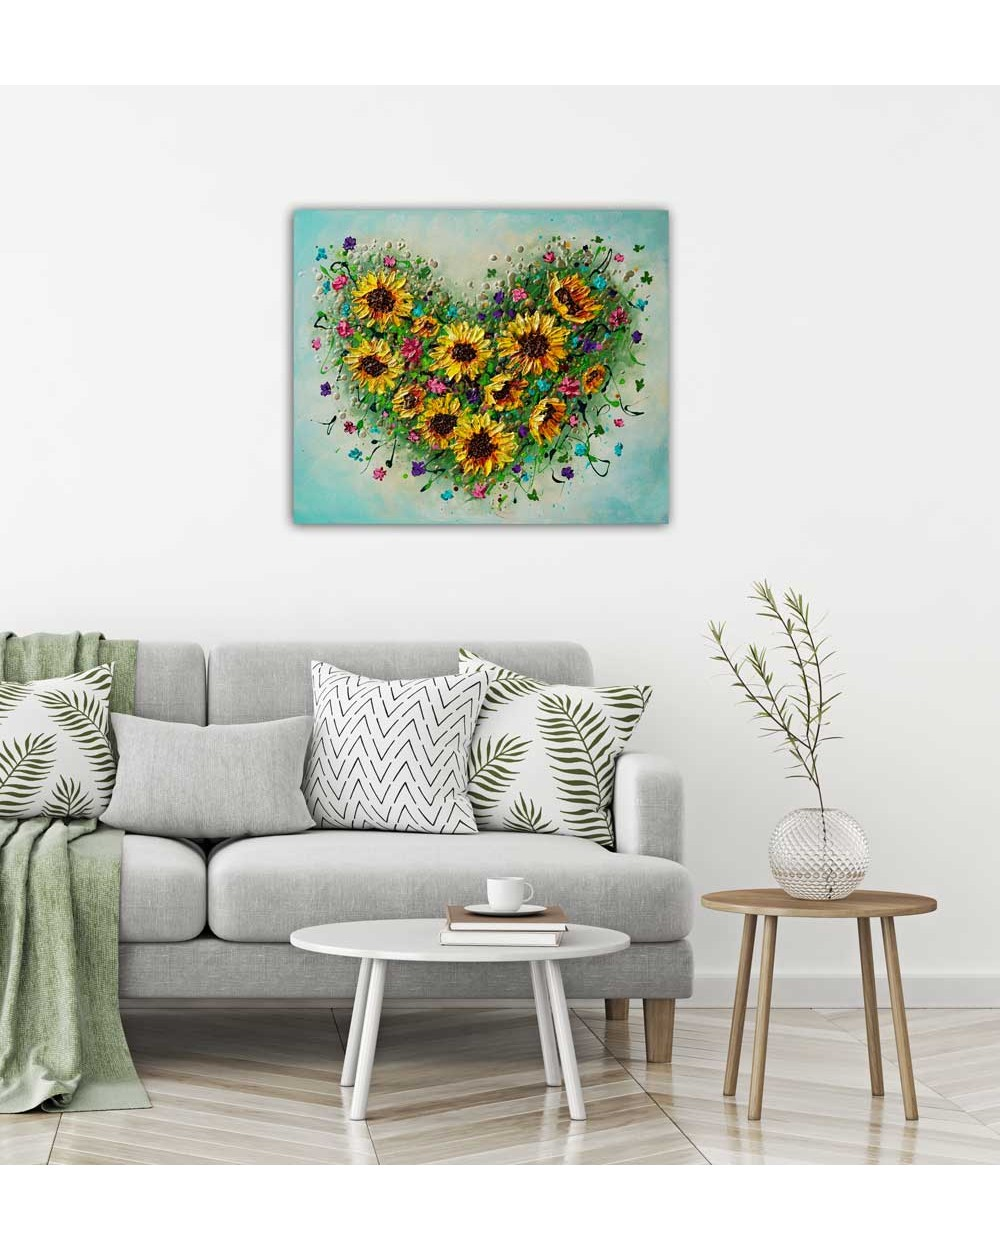 Blooming Heart of Sunflowers